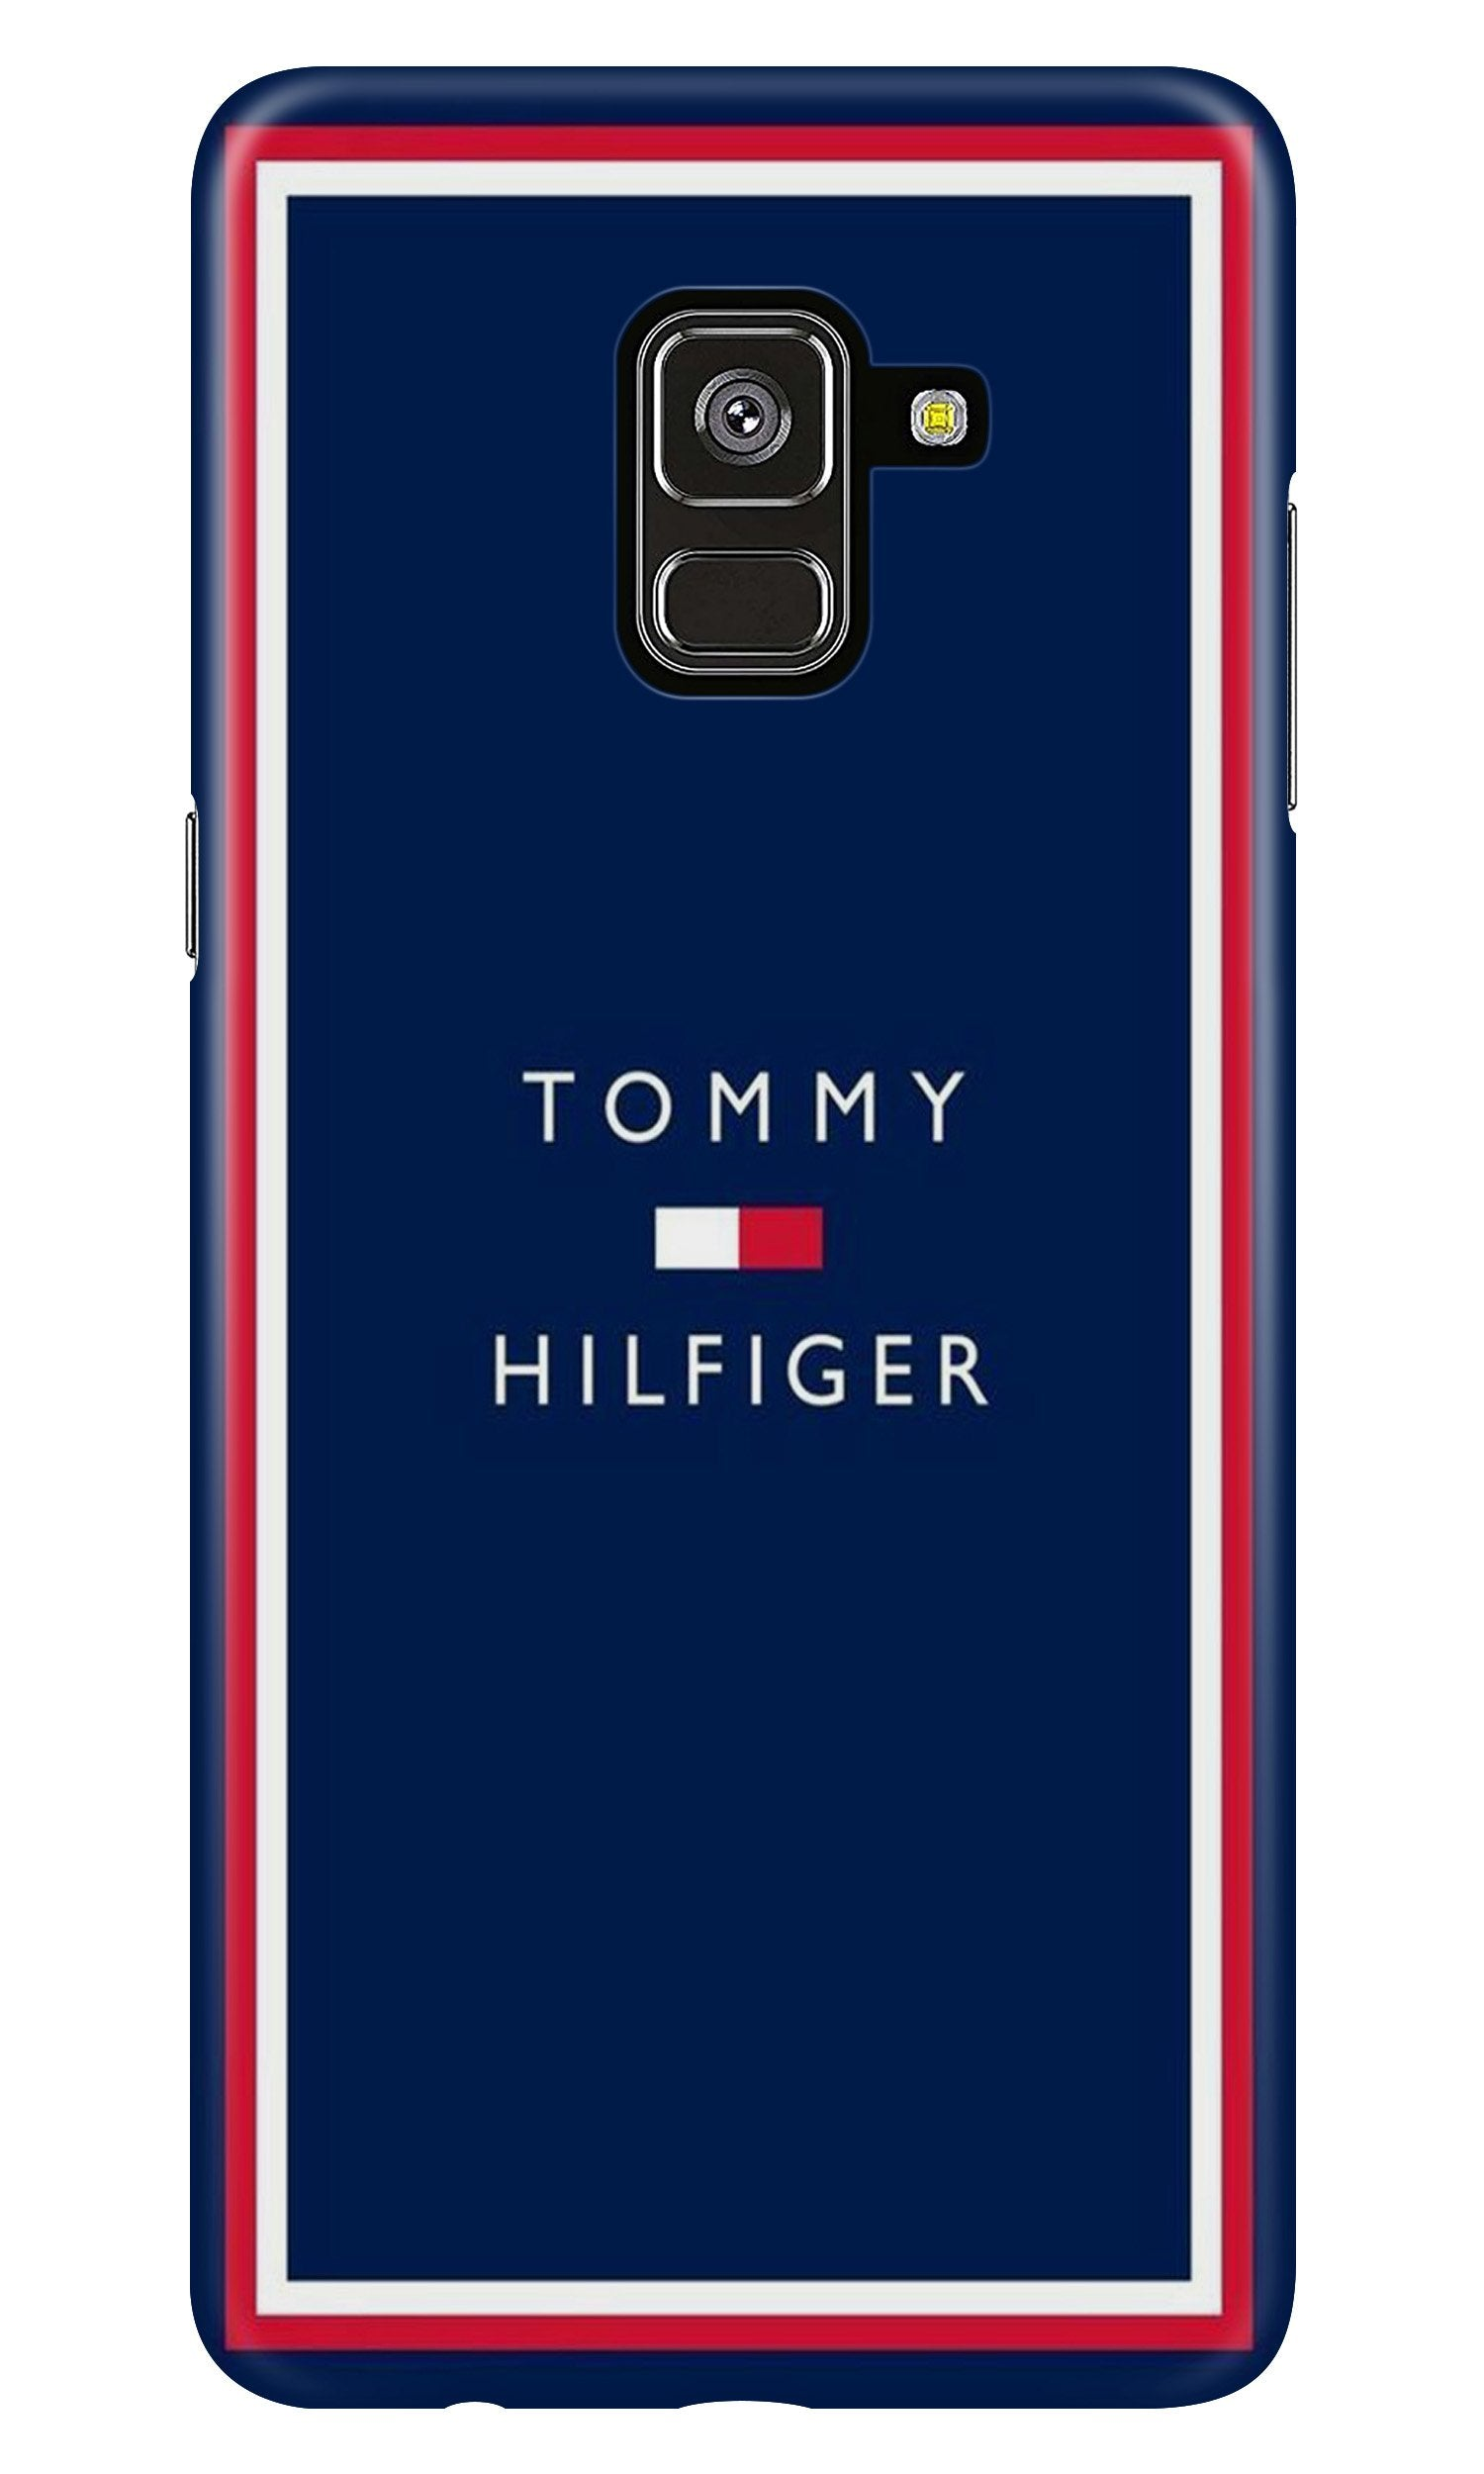 Tommy Hilfiger Case for Samsung Galaxy A8 Plus (Design No. 275)